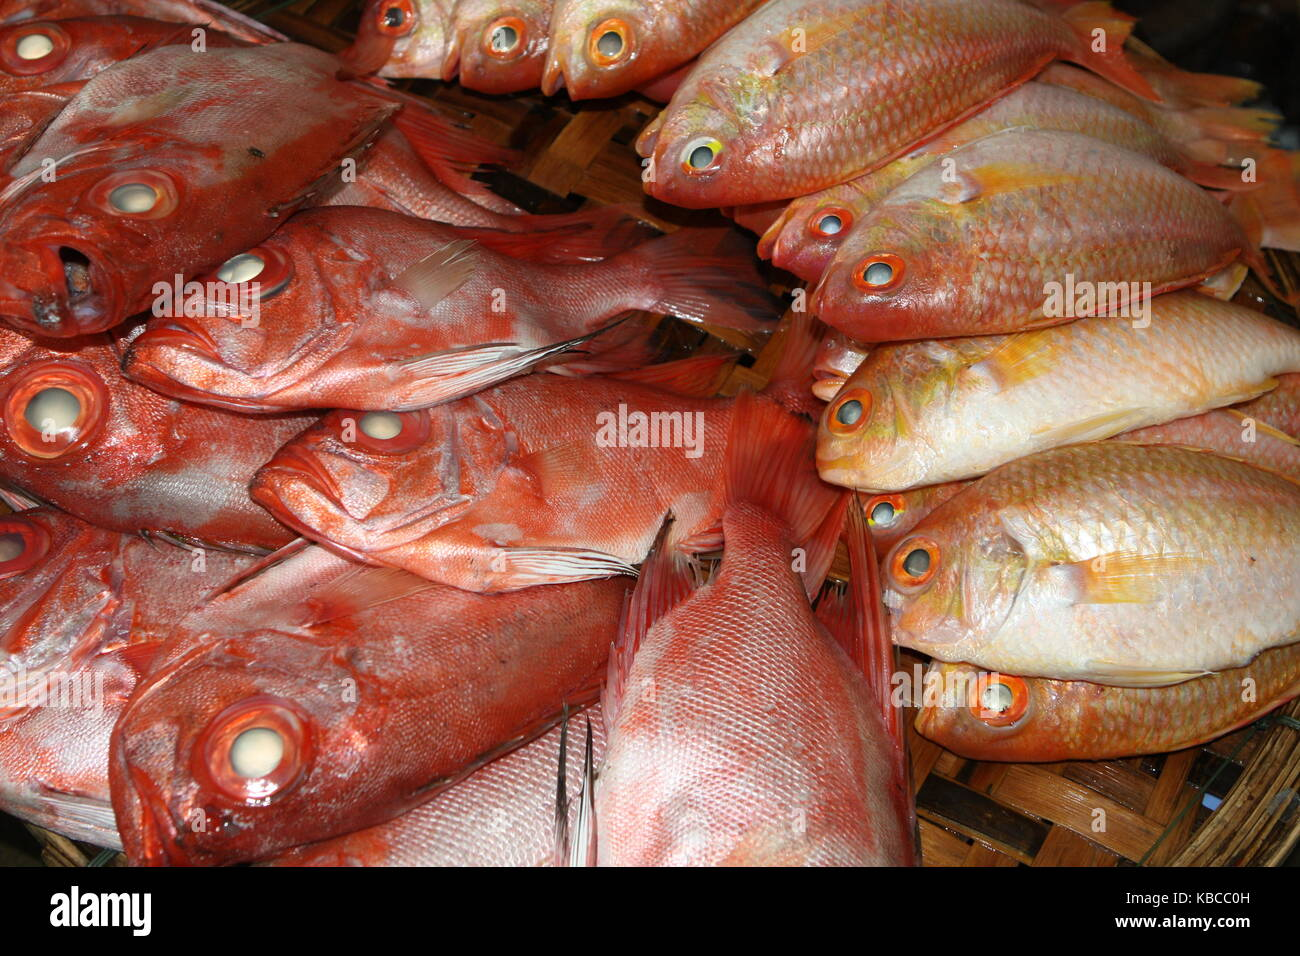 Red snapper and yellow fish on Market - Stock Image